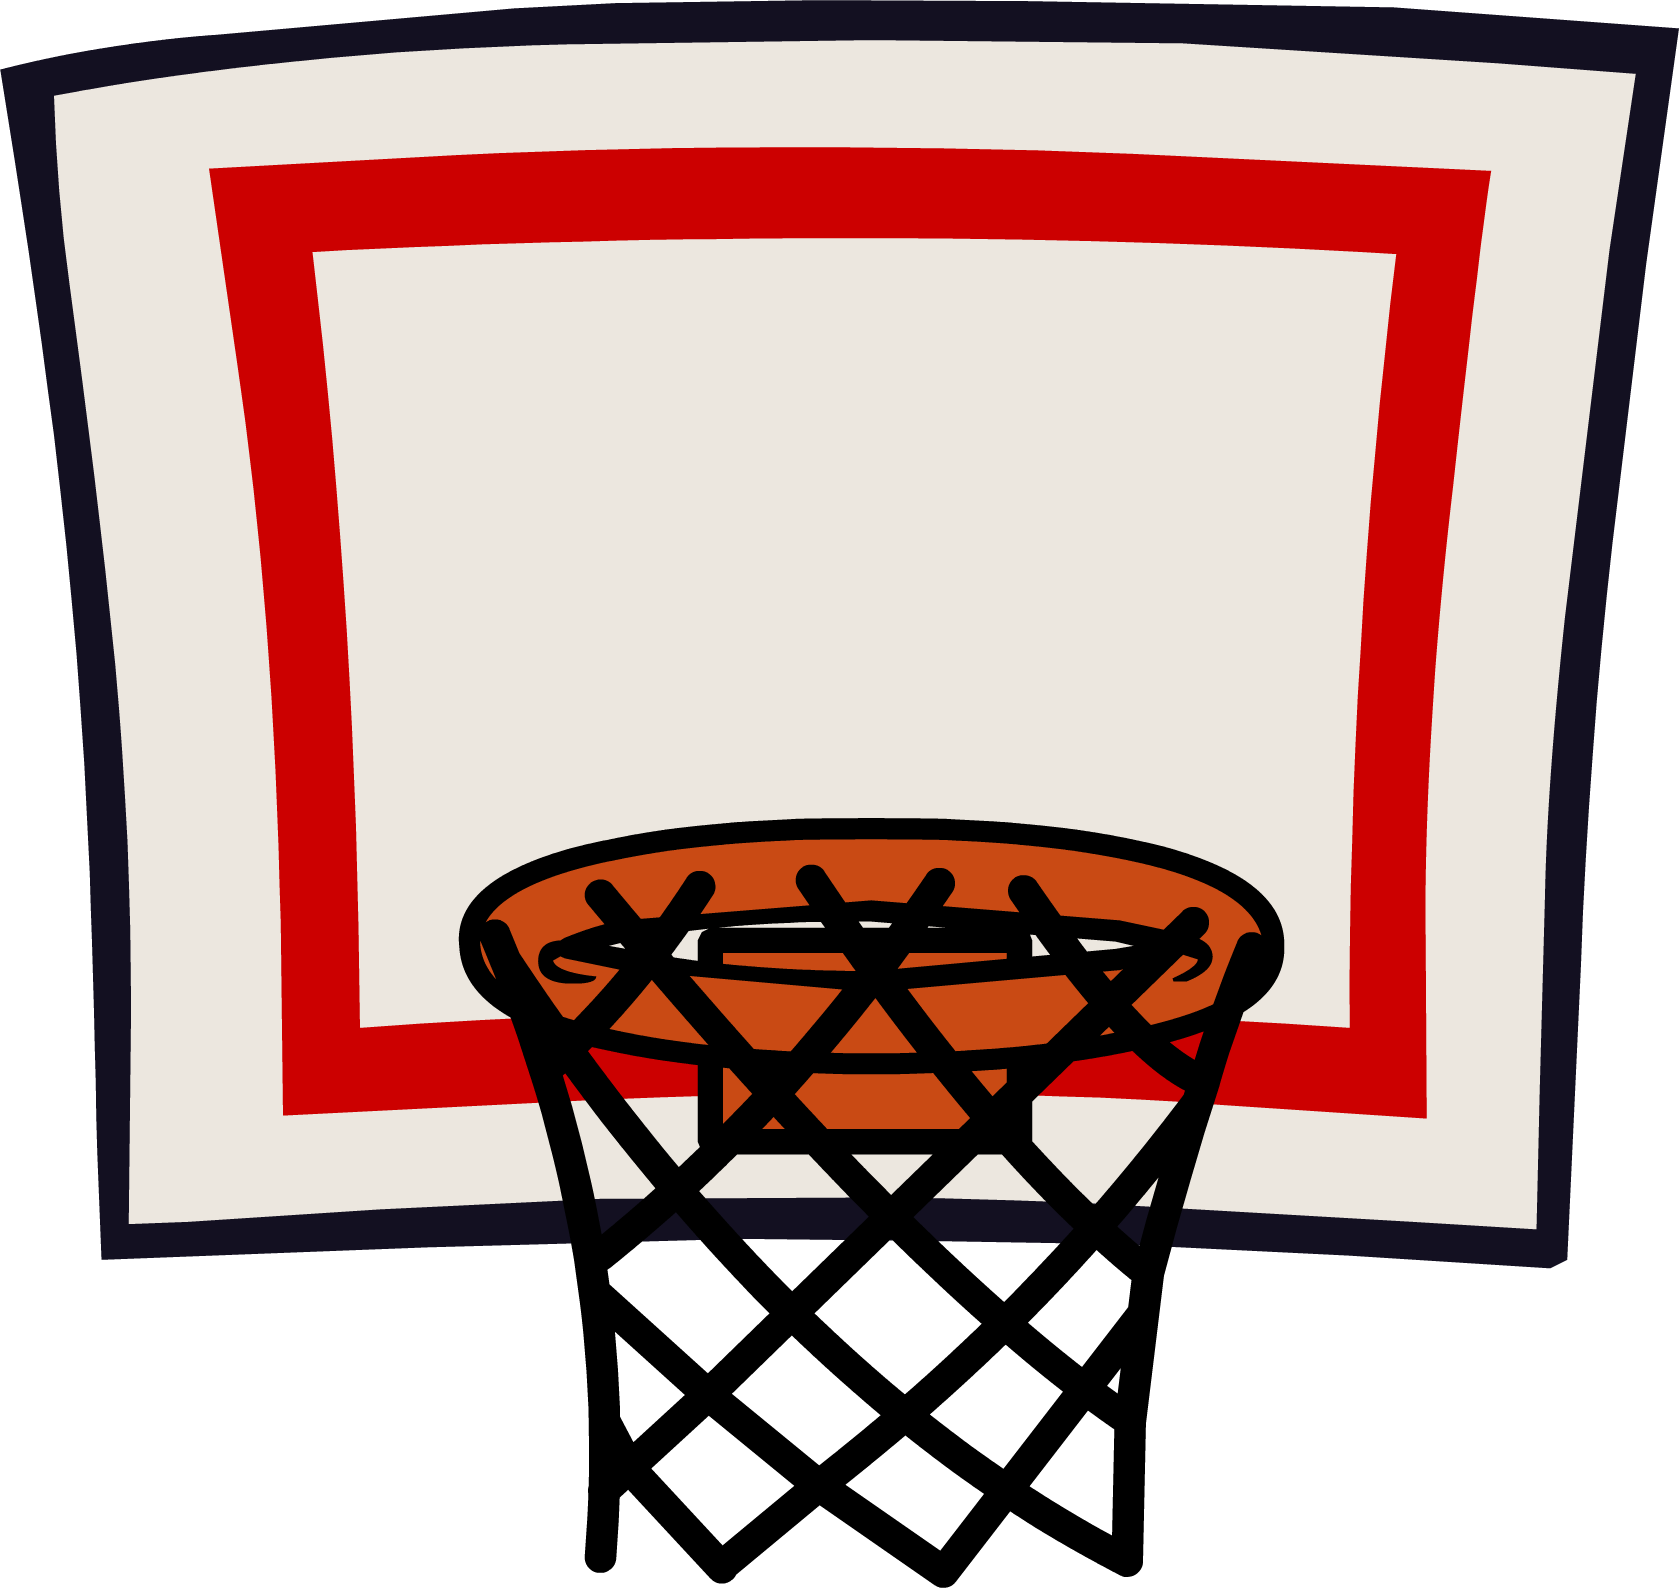 basket ball net png